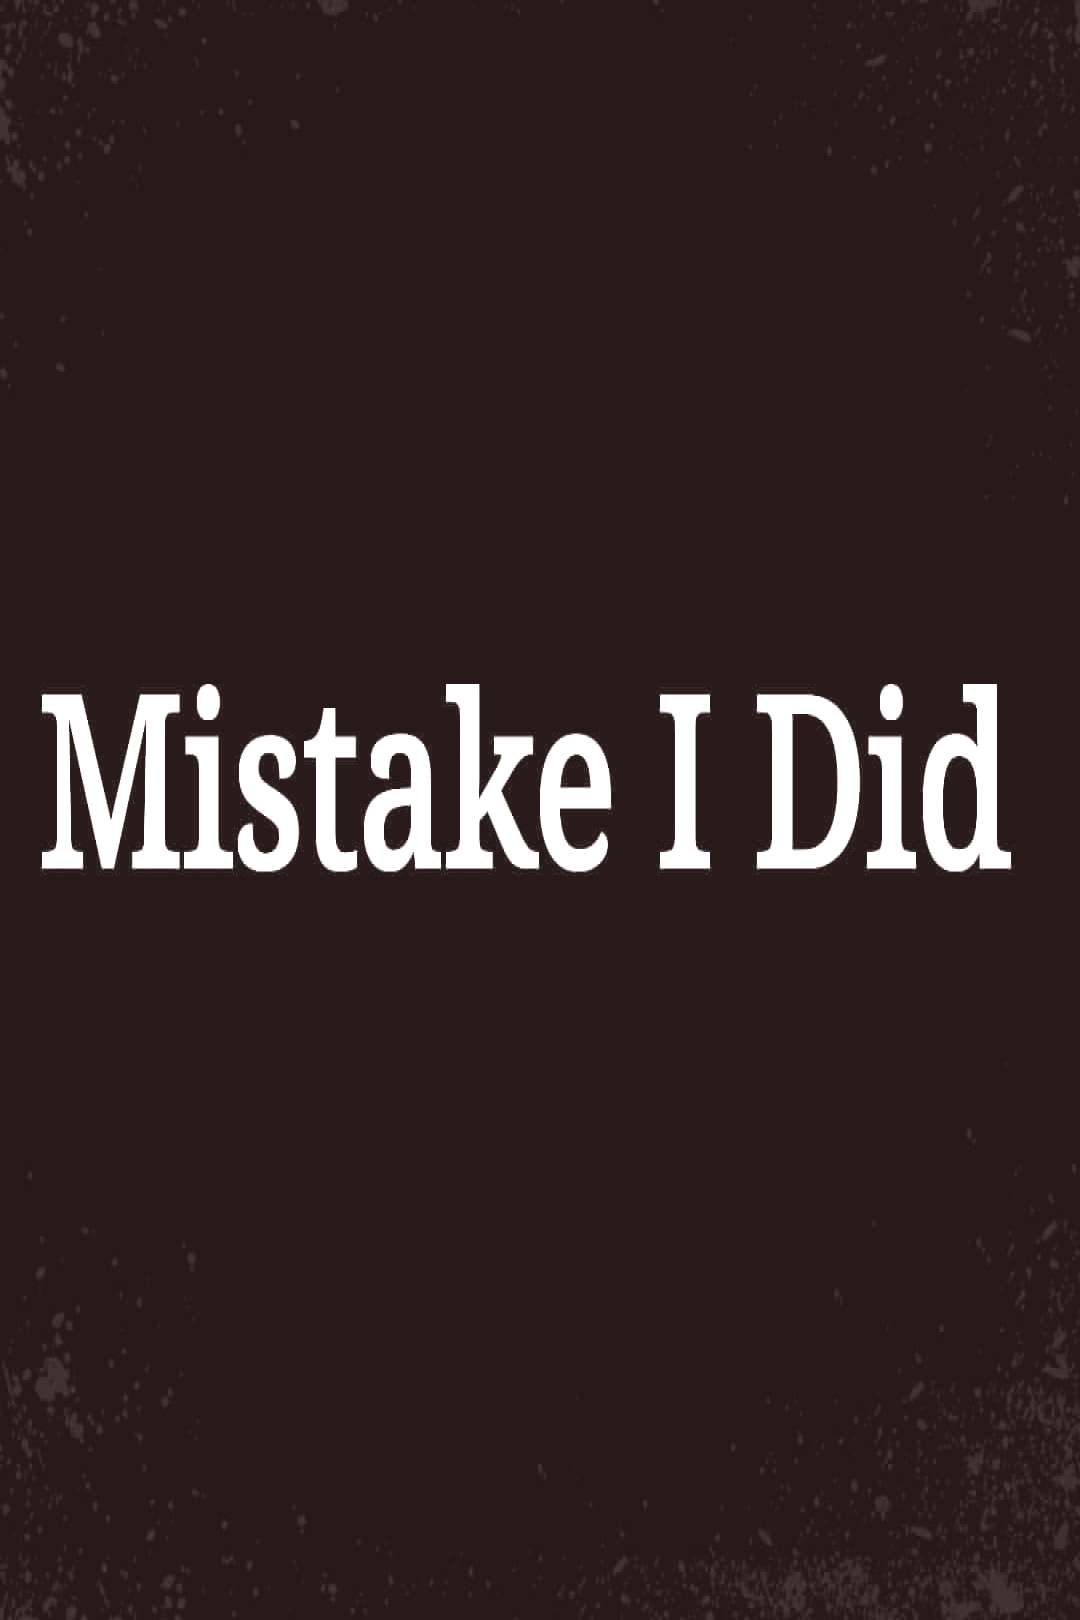 Mistake I Did. Great things go away, but I held on because of tha